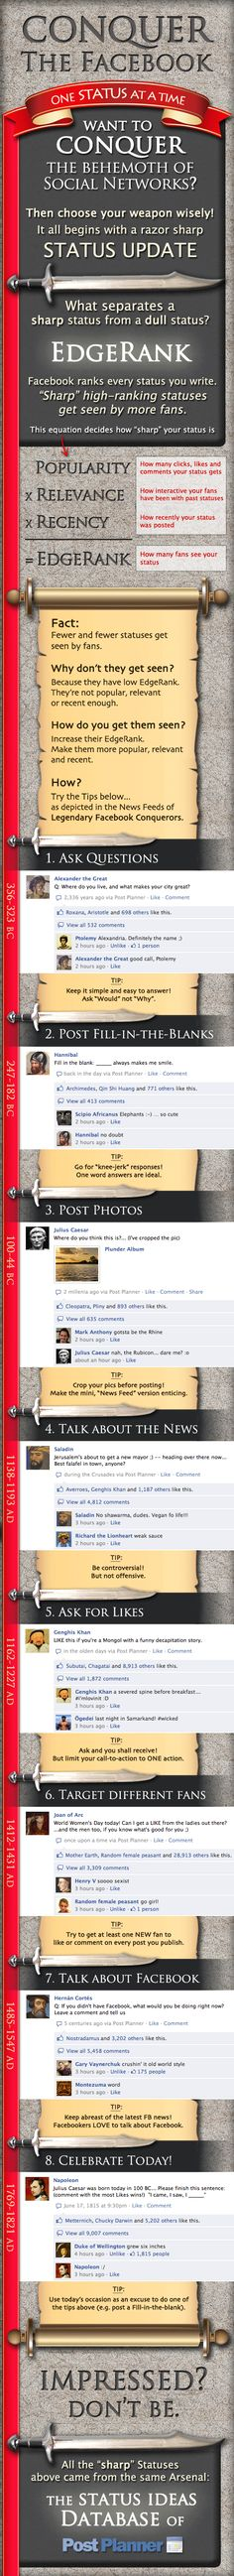 Facebook Status Ideas to Improve your Edgerank https://www.facebook.com/pages/Signature-Homestyles-by-Terri-Moore/852967758125671